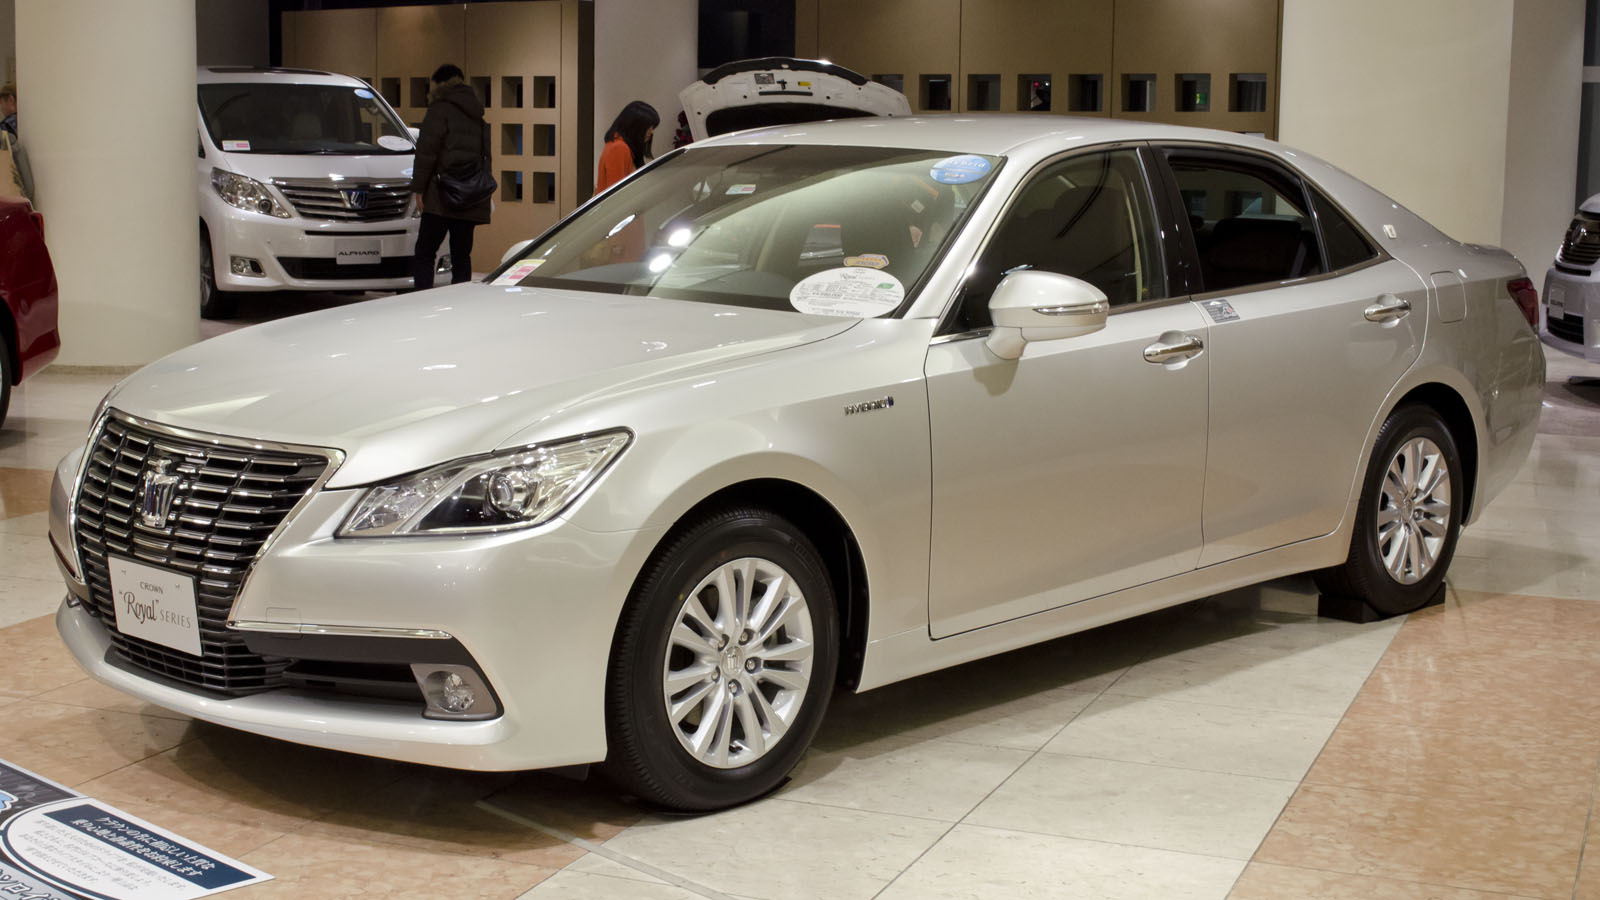 toyota crown 3.0 2010